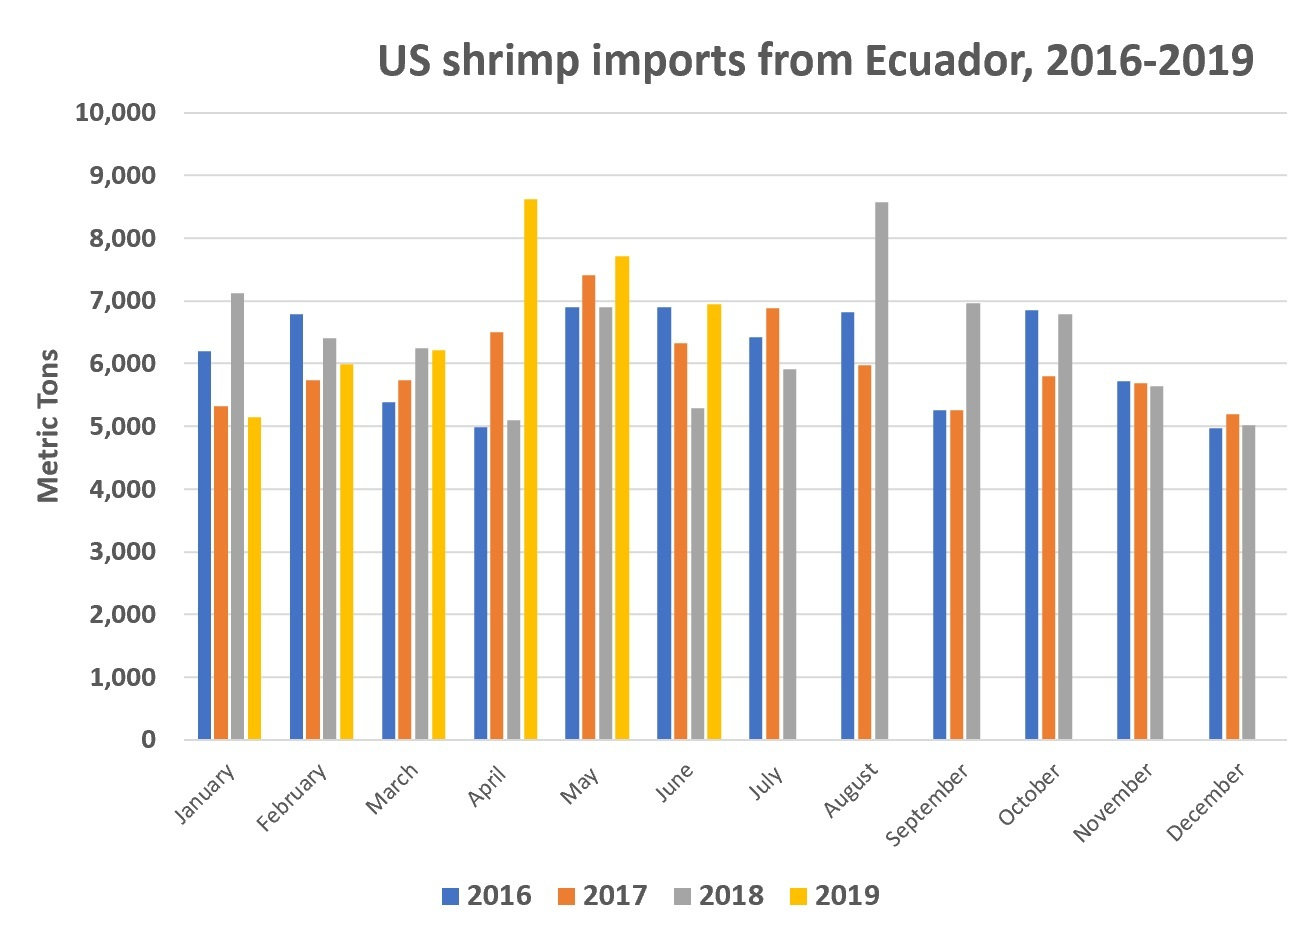 Ecuador ends first half US shrimp import surge with June to remember